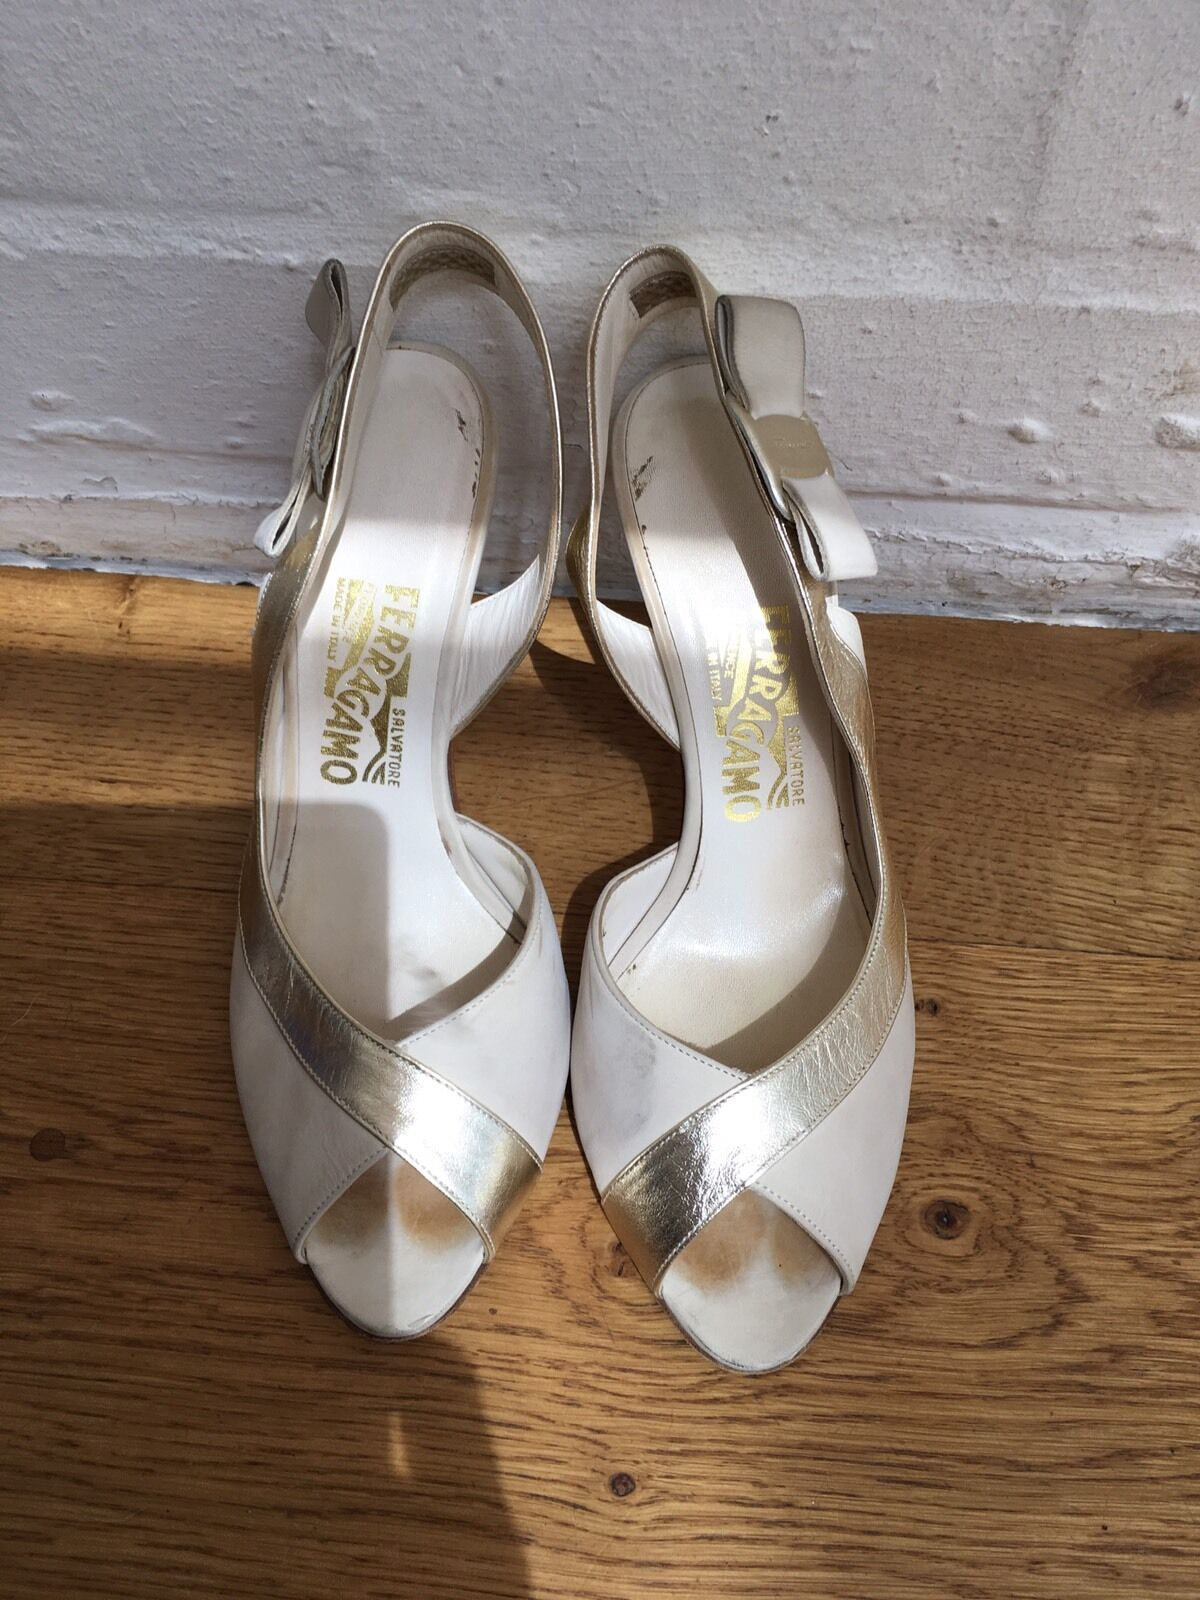 SALVATORE FERRAGAMO LEATHER PEEP TOE  PUMPS  Schuhe SIZE 37.5 US 7 1/2 37.5 SIZE UK 4.5 869b8a